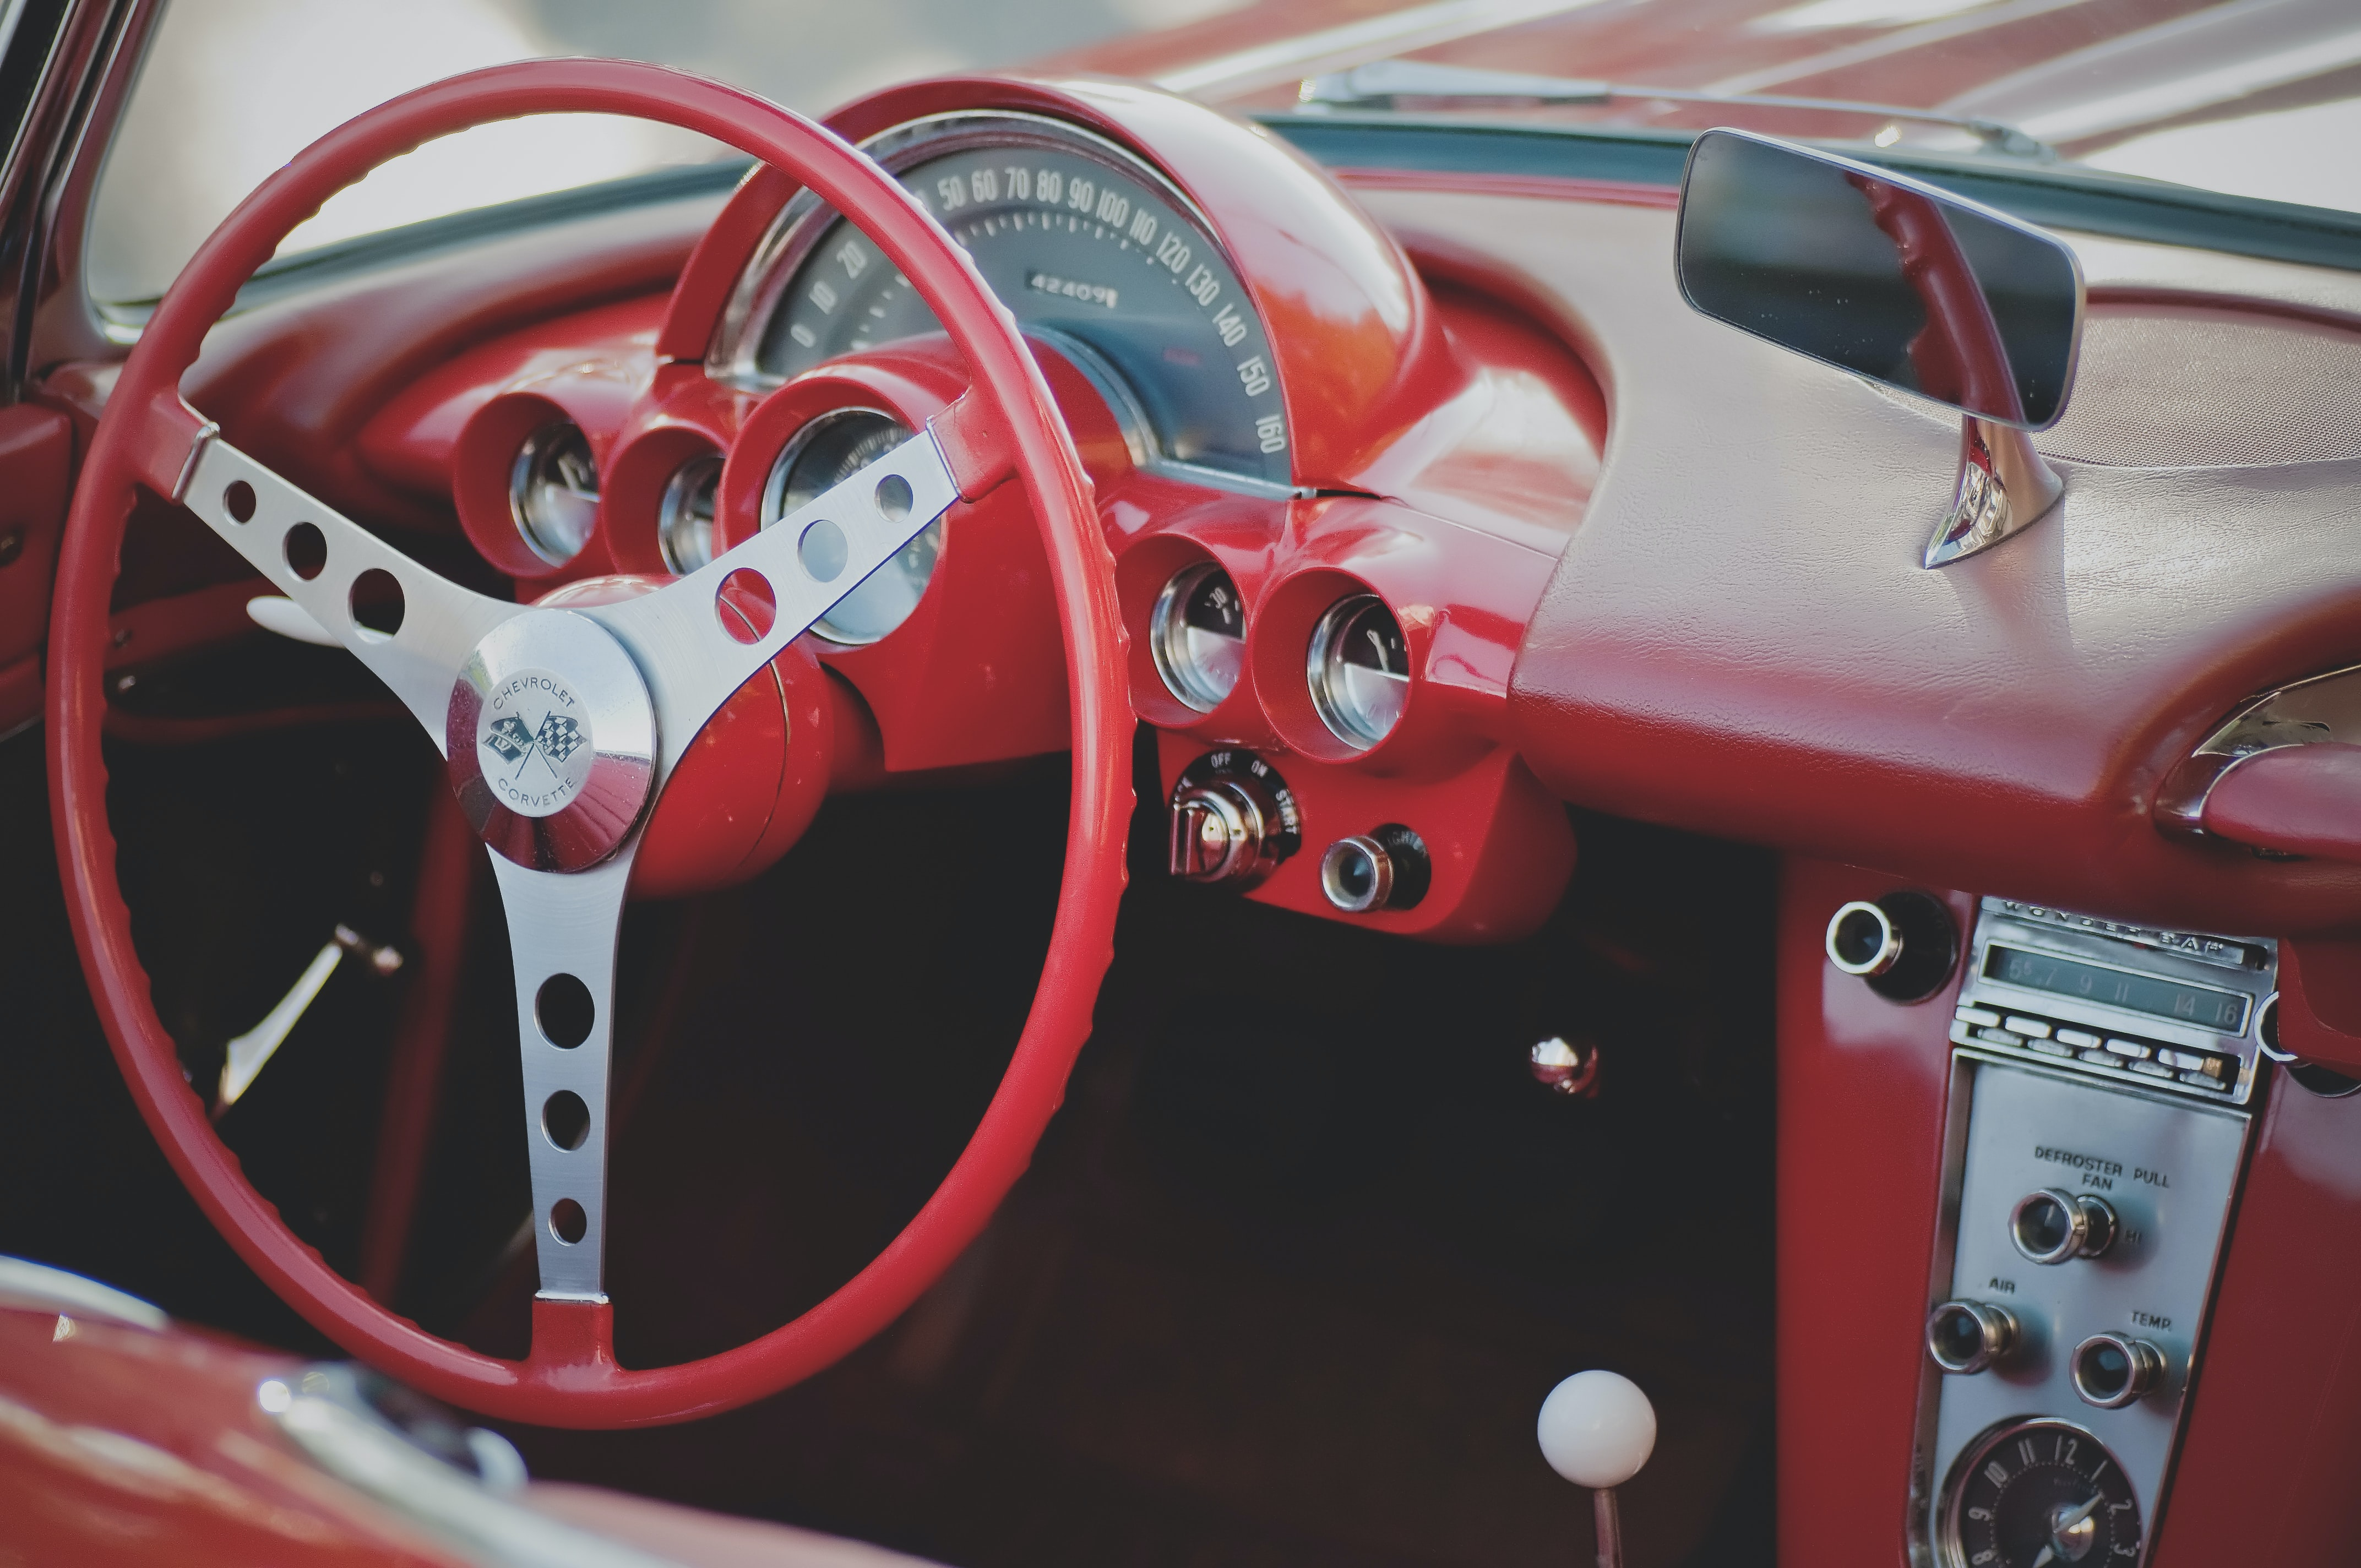 Red interior of vintage Chevrolet car with steering wheel and dashboard